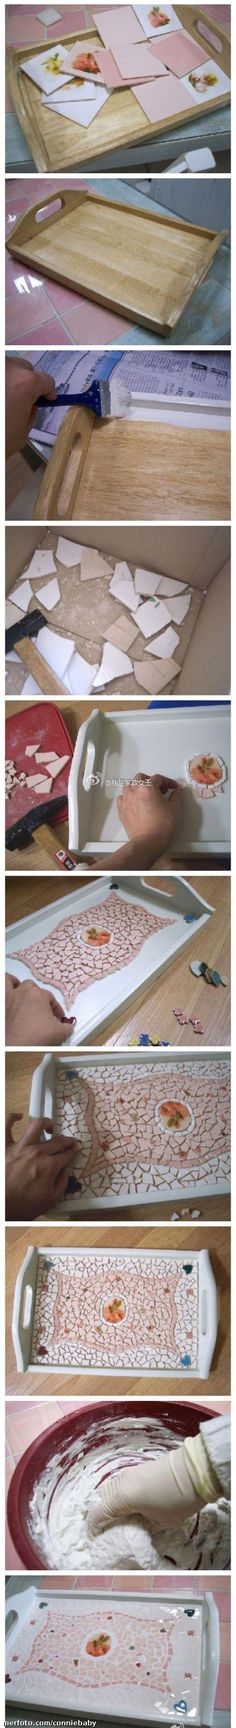 Don't throw away your old ceramic tiles